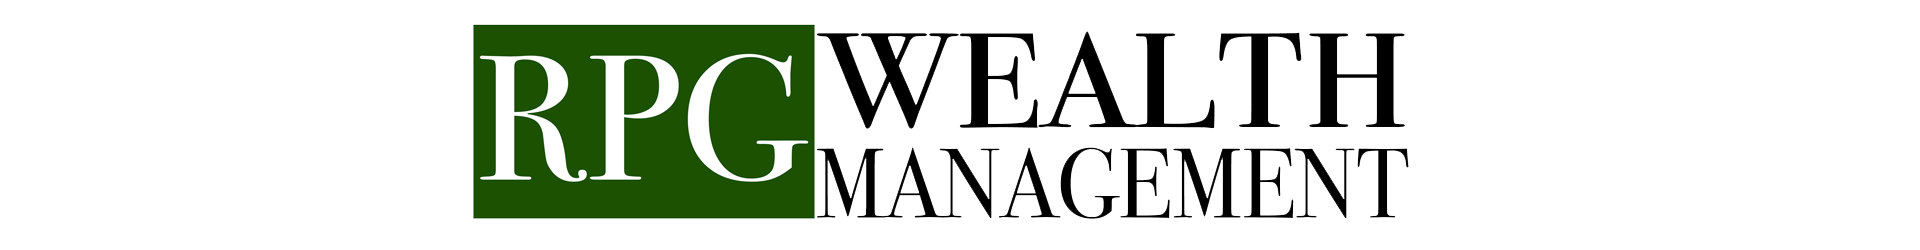 RPG Wealth Management, Inc.